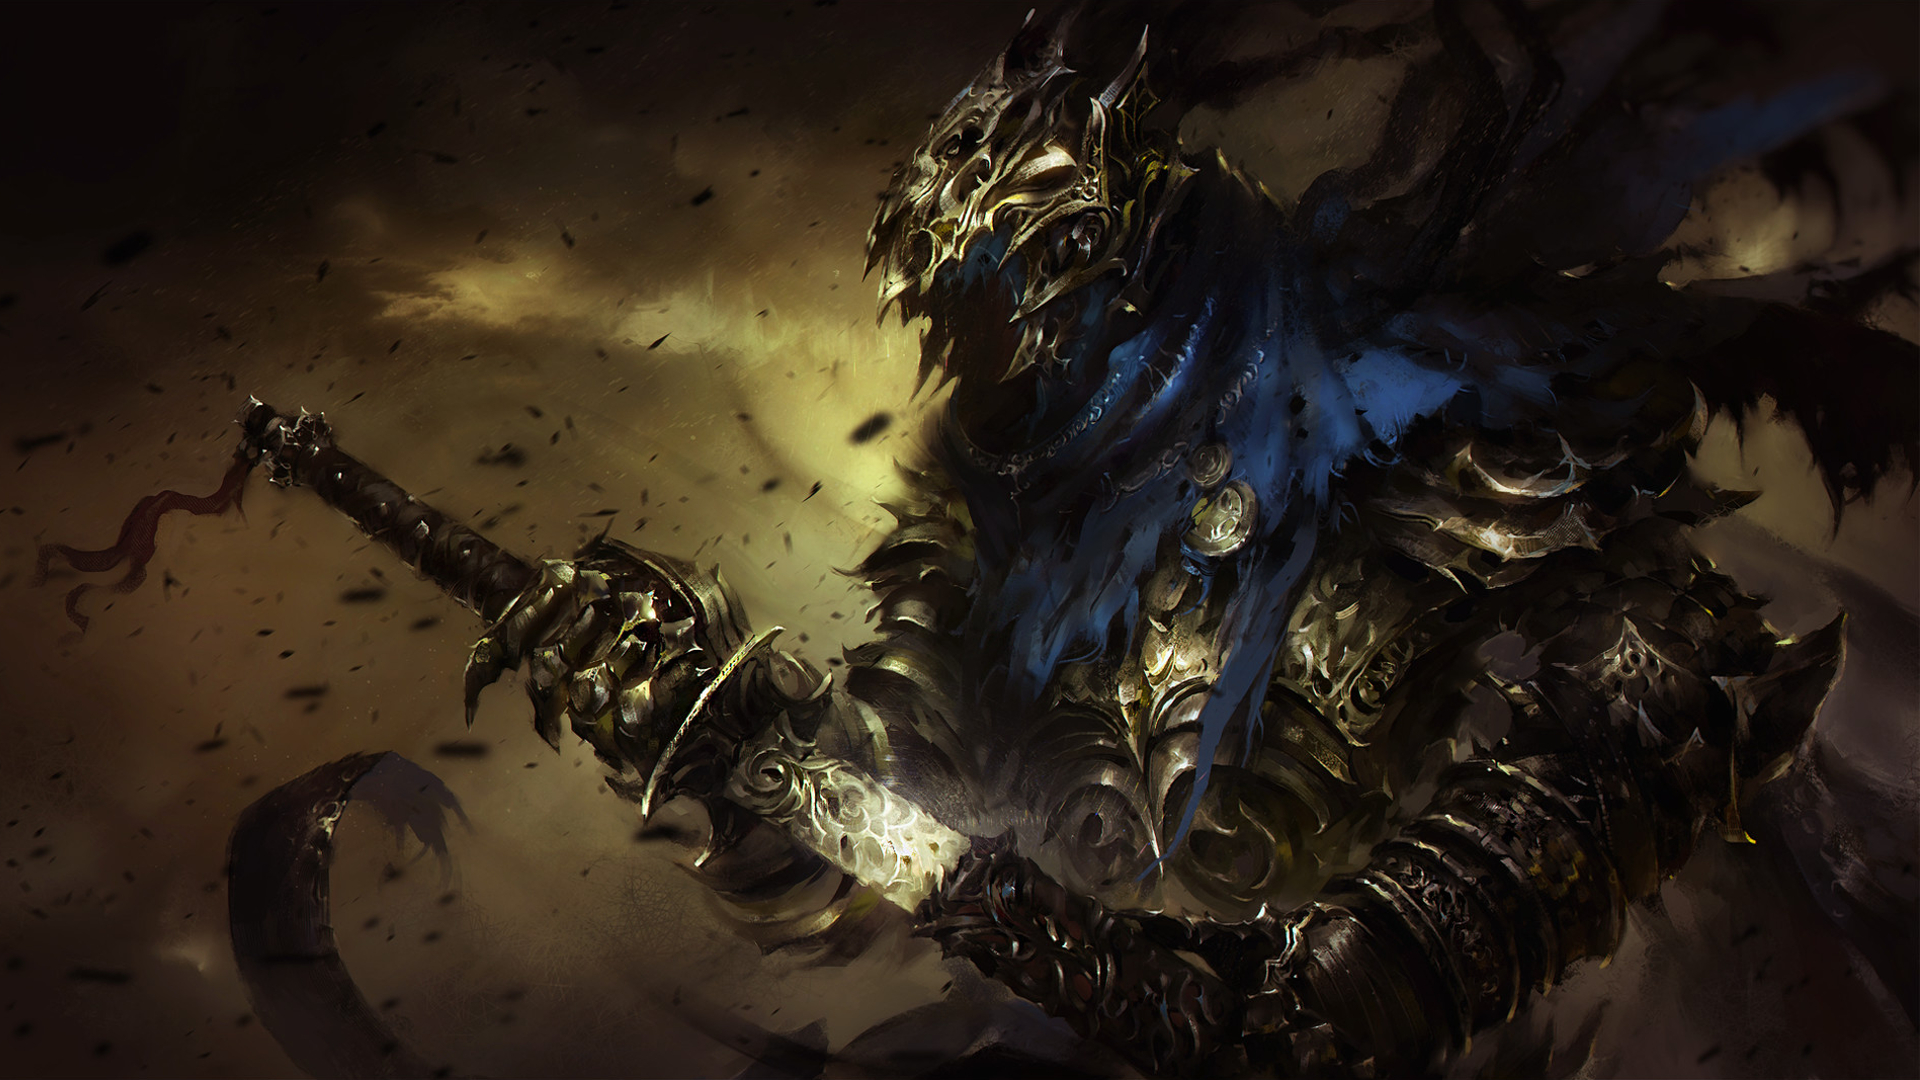 Dark Souls Backgrounds, Pictures, Images